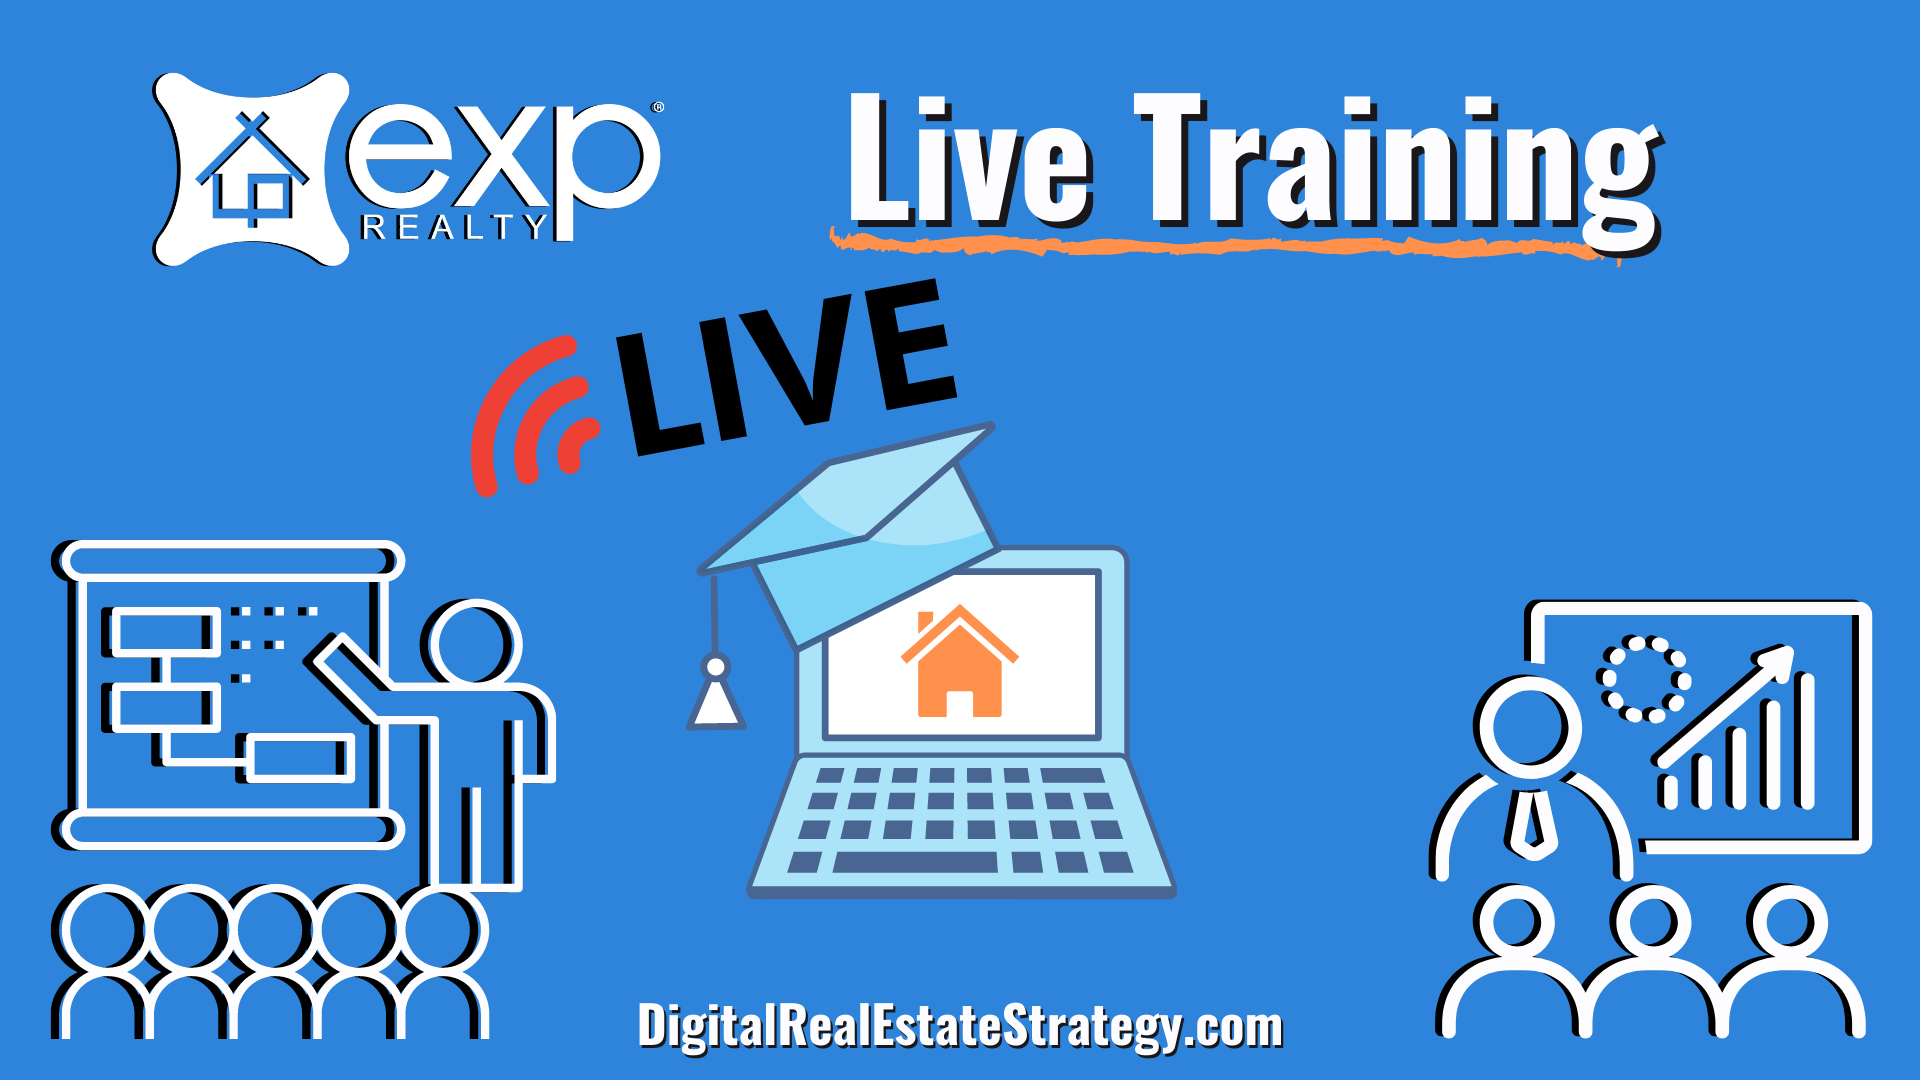 eXp Realty Live Real Estate Training Classes - eXp Realty Review - Jerome Lewis - eXp Realty Philadelphia - PA - Digital Real Estate Strategy